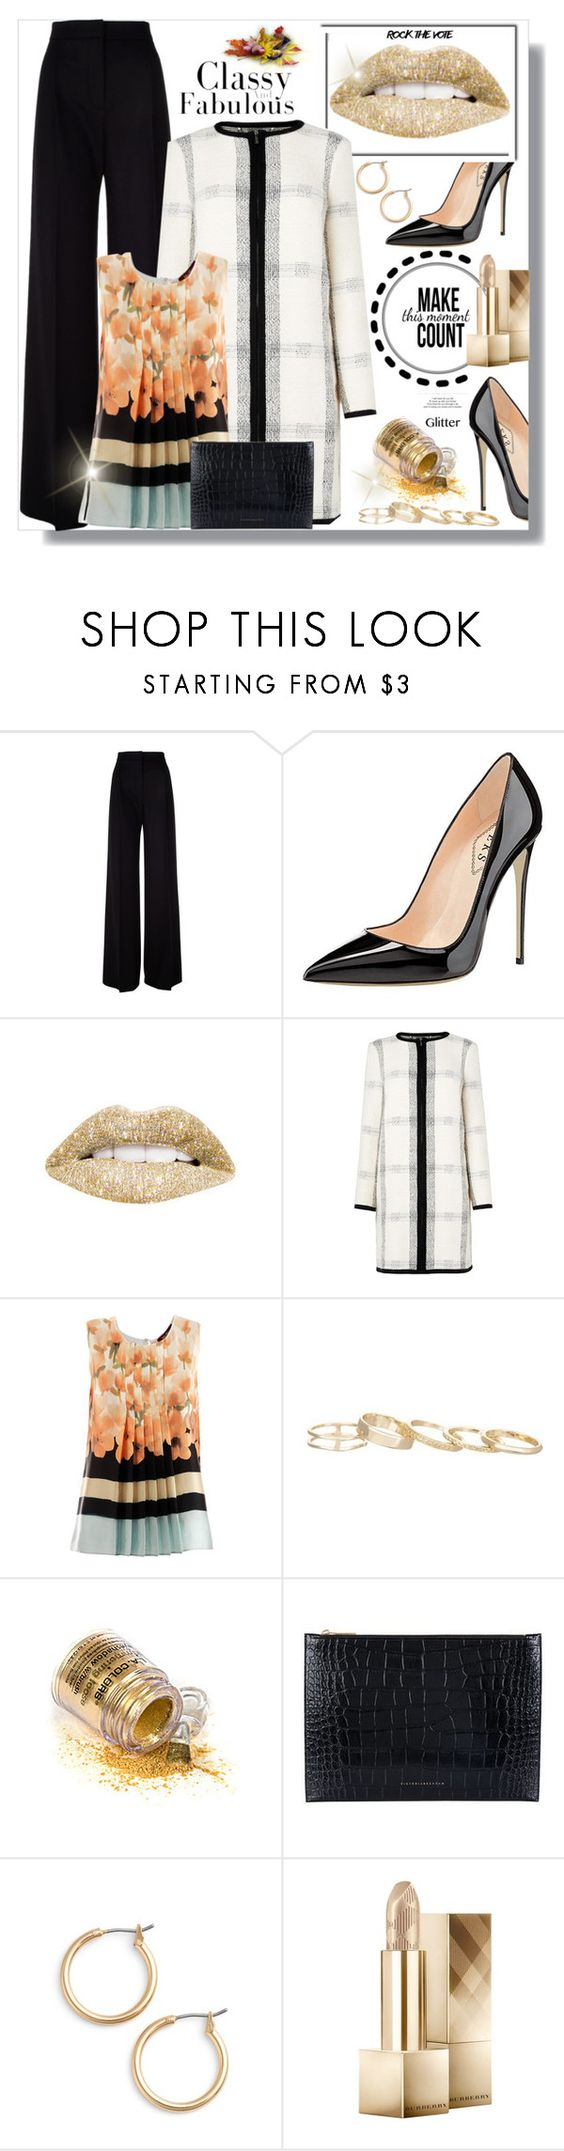 """Make it count"" by carleen1978 ❤ liked on Polyvore featuring MaxMara, L.K.Bennett, Kendra Scott, Victoria Beckham, Nordstrom and Burberry"